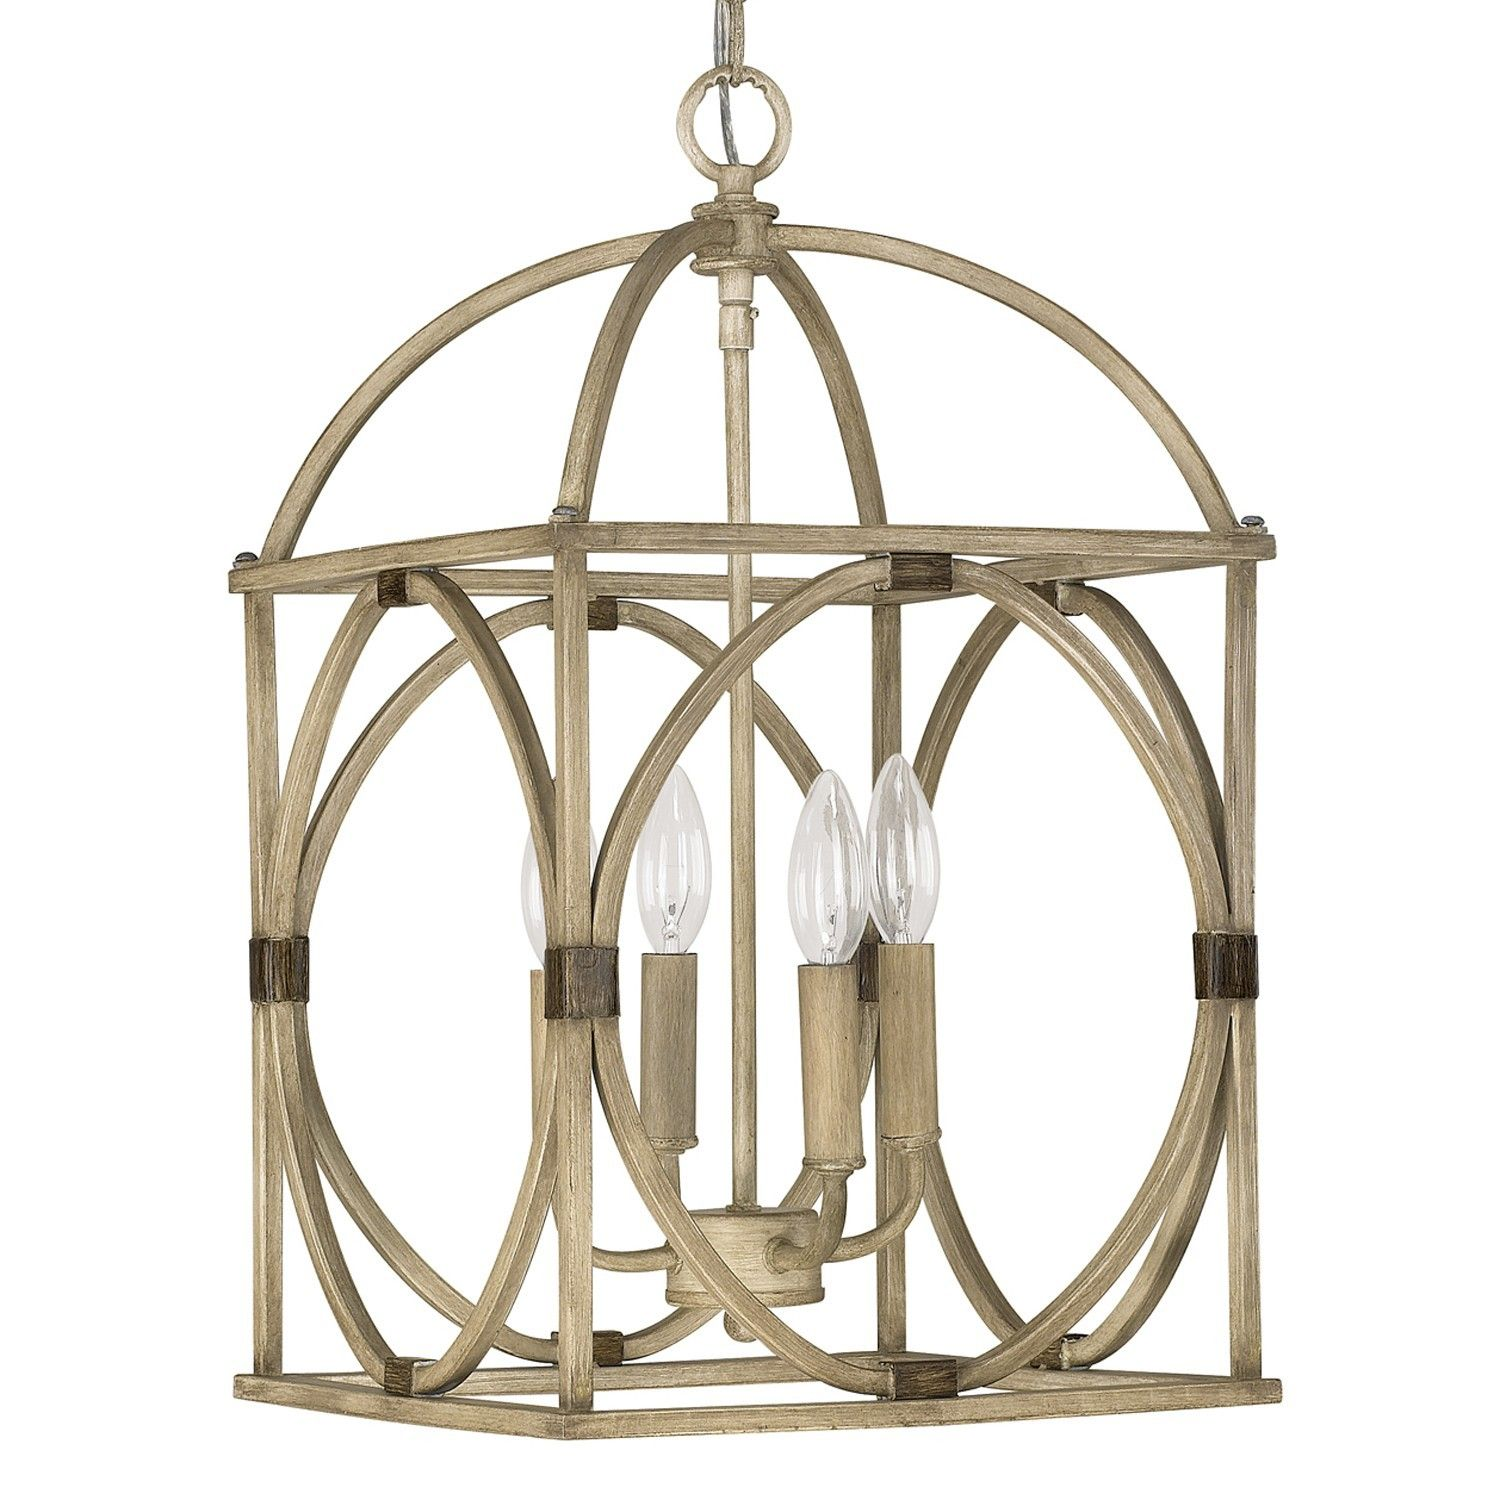 Chesapeake light candlestyle chandelier foyers lights and